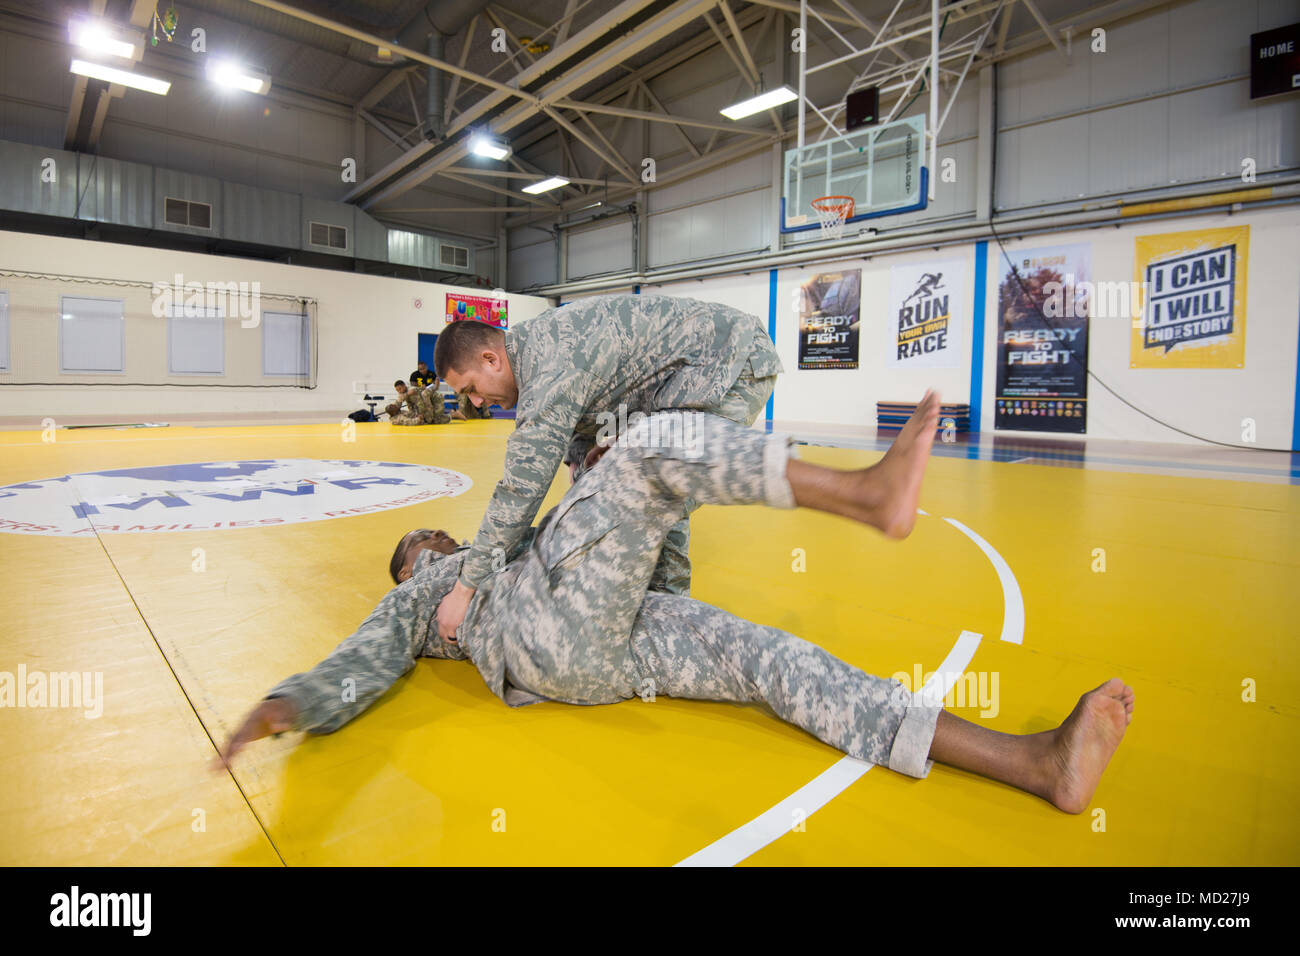 U.S. Air Force Staff Sgt. Mario Huerta, right, assigned to the SACEUR Security Detachment, controls the landing, after a hip throw, of U.S. Army Sgt. Terrance Simmons, with the Northern Law Center, 21st Theater Sustainment Command, during the Joint Tactical Combatives Course, on Chièvres Air Base, Belgium, March 9, 2018. (U.S. Army photo by Visual Information Specialist Pierre-Etienne Courtejoie) - Stock Image